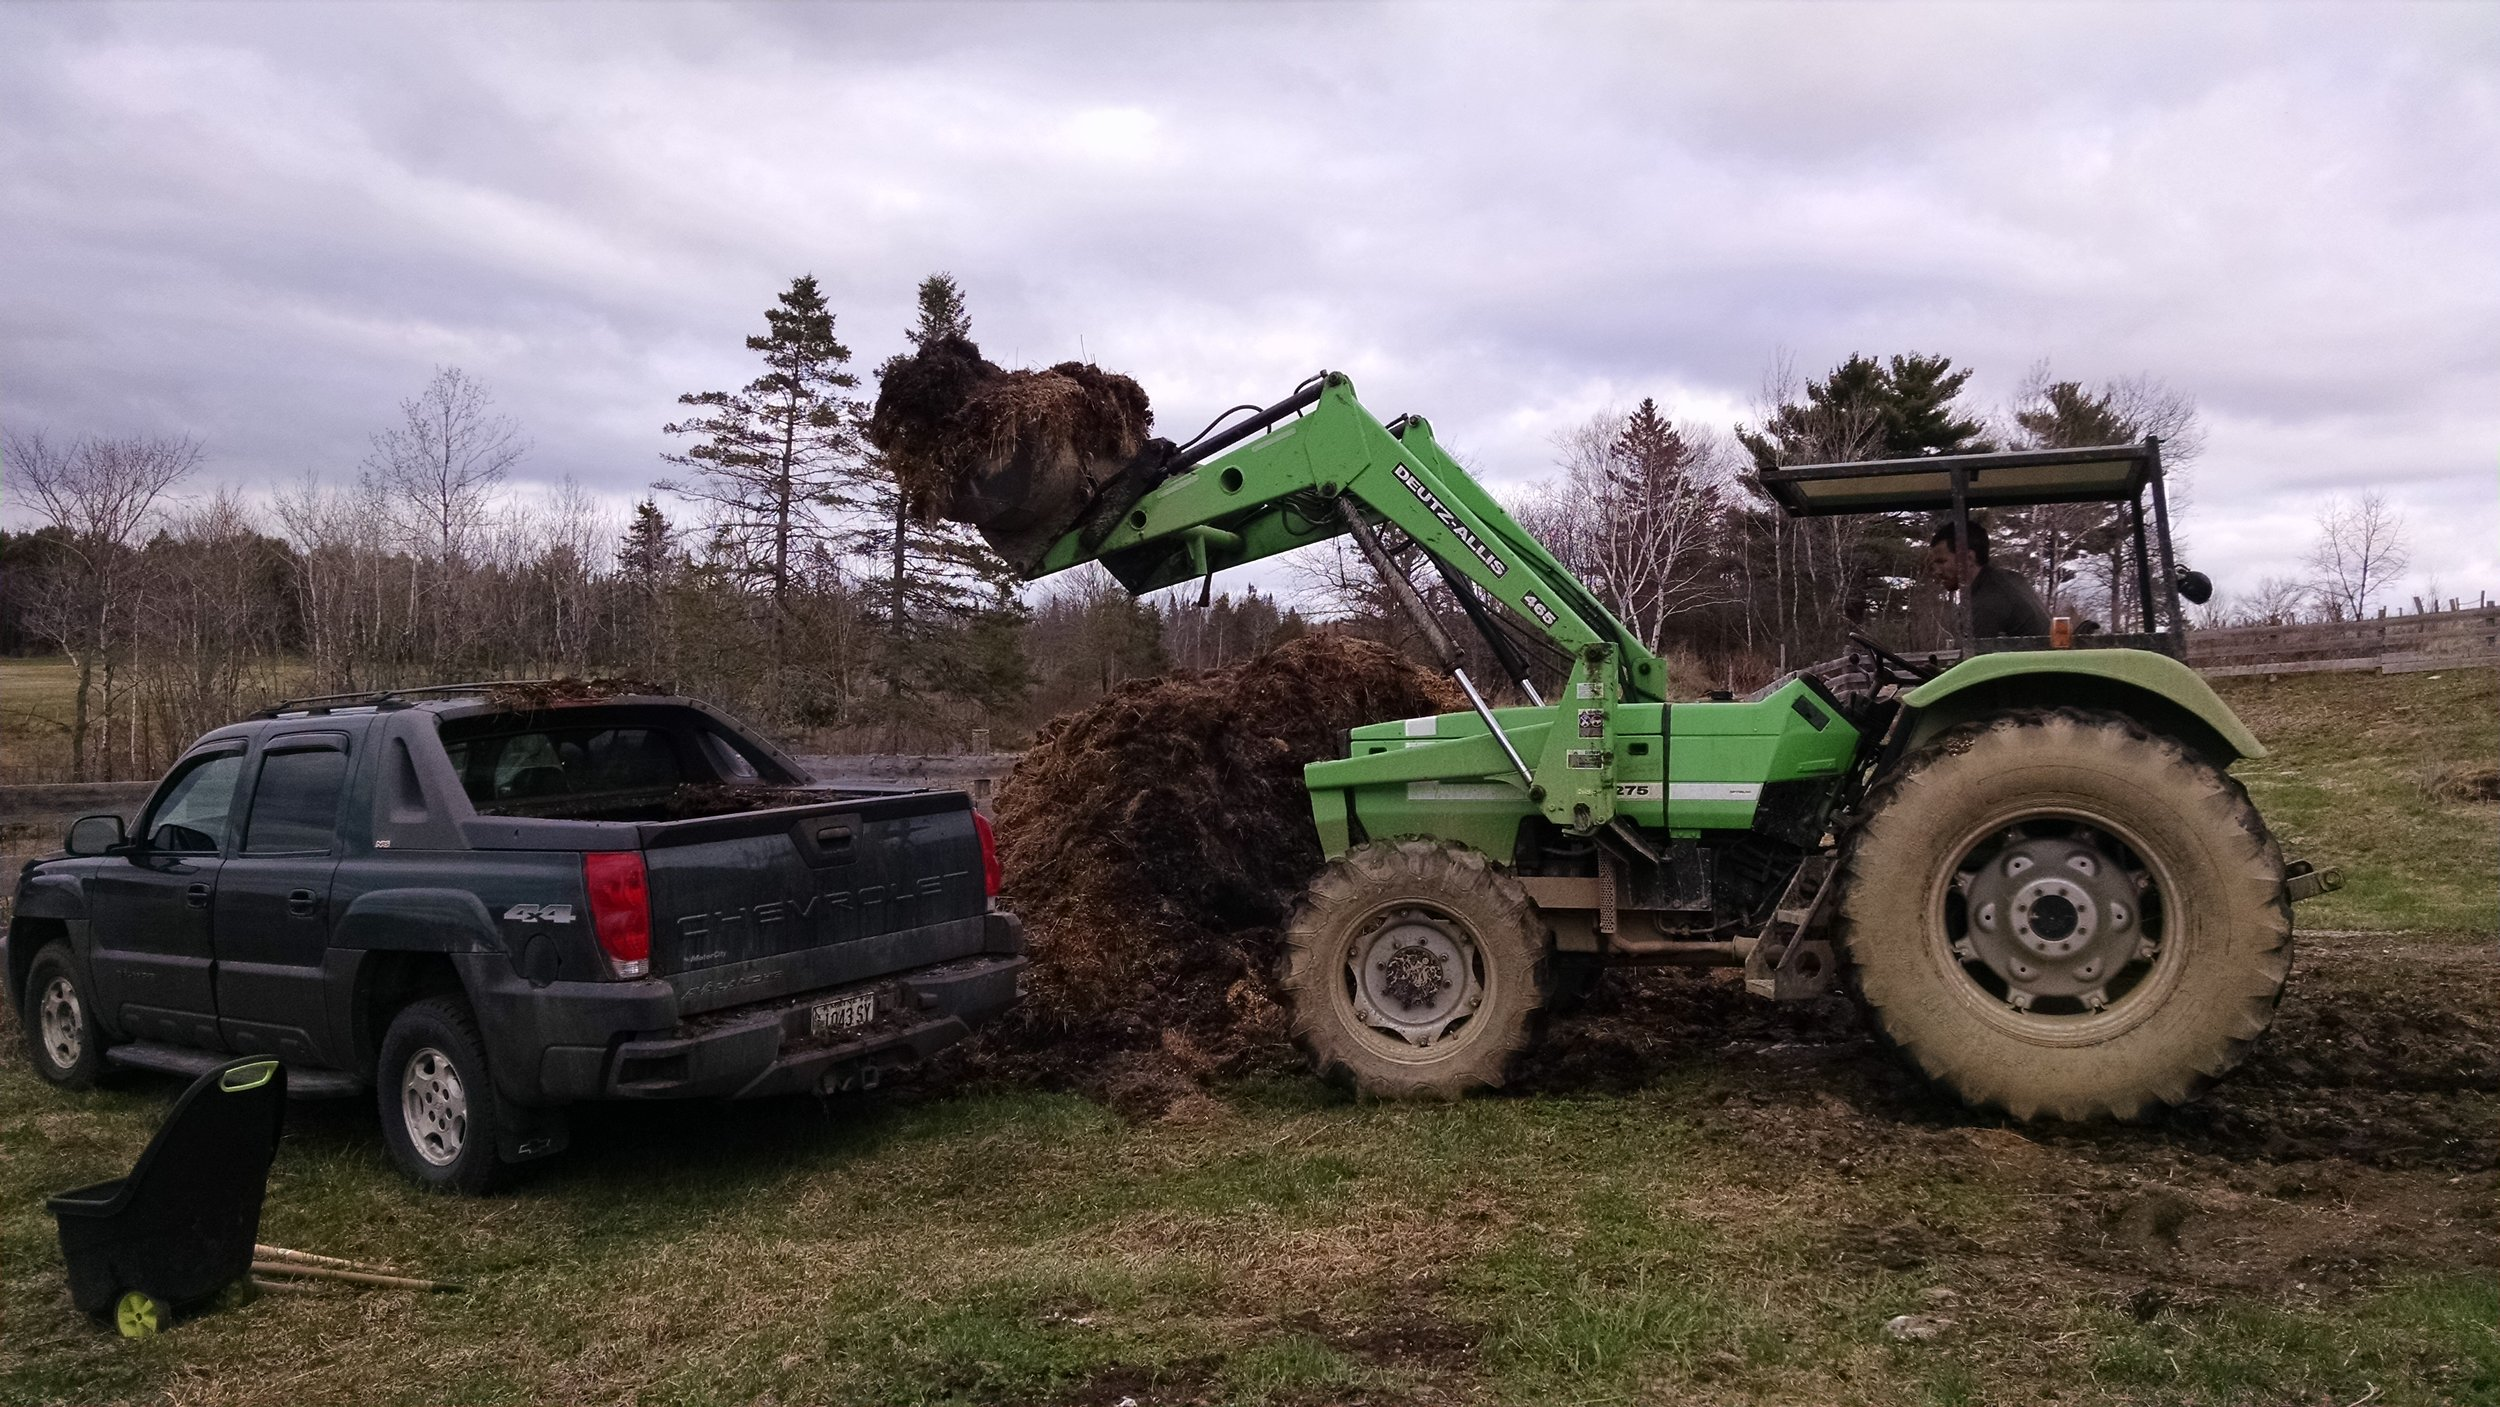 Loading up our truck with cow manure. Tractors are great!